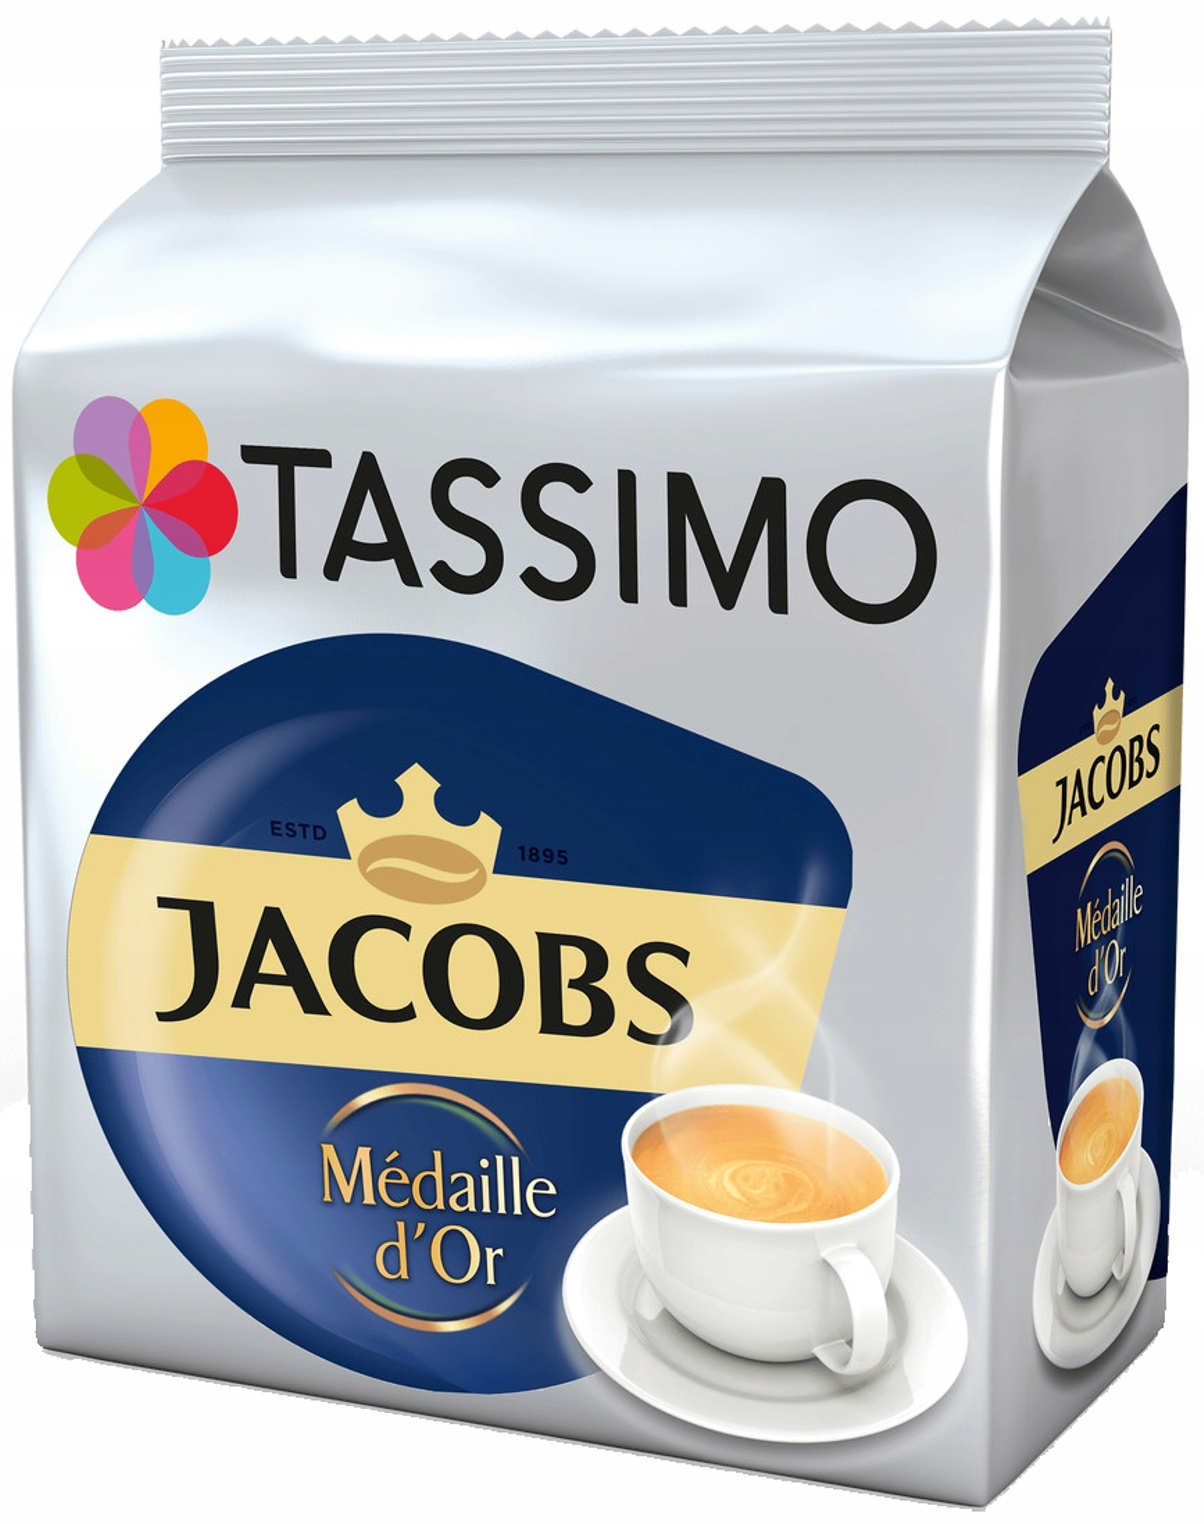 TASSIMO Jacobs Medaille d'Or в капсулах 100% арабика